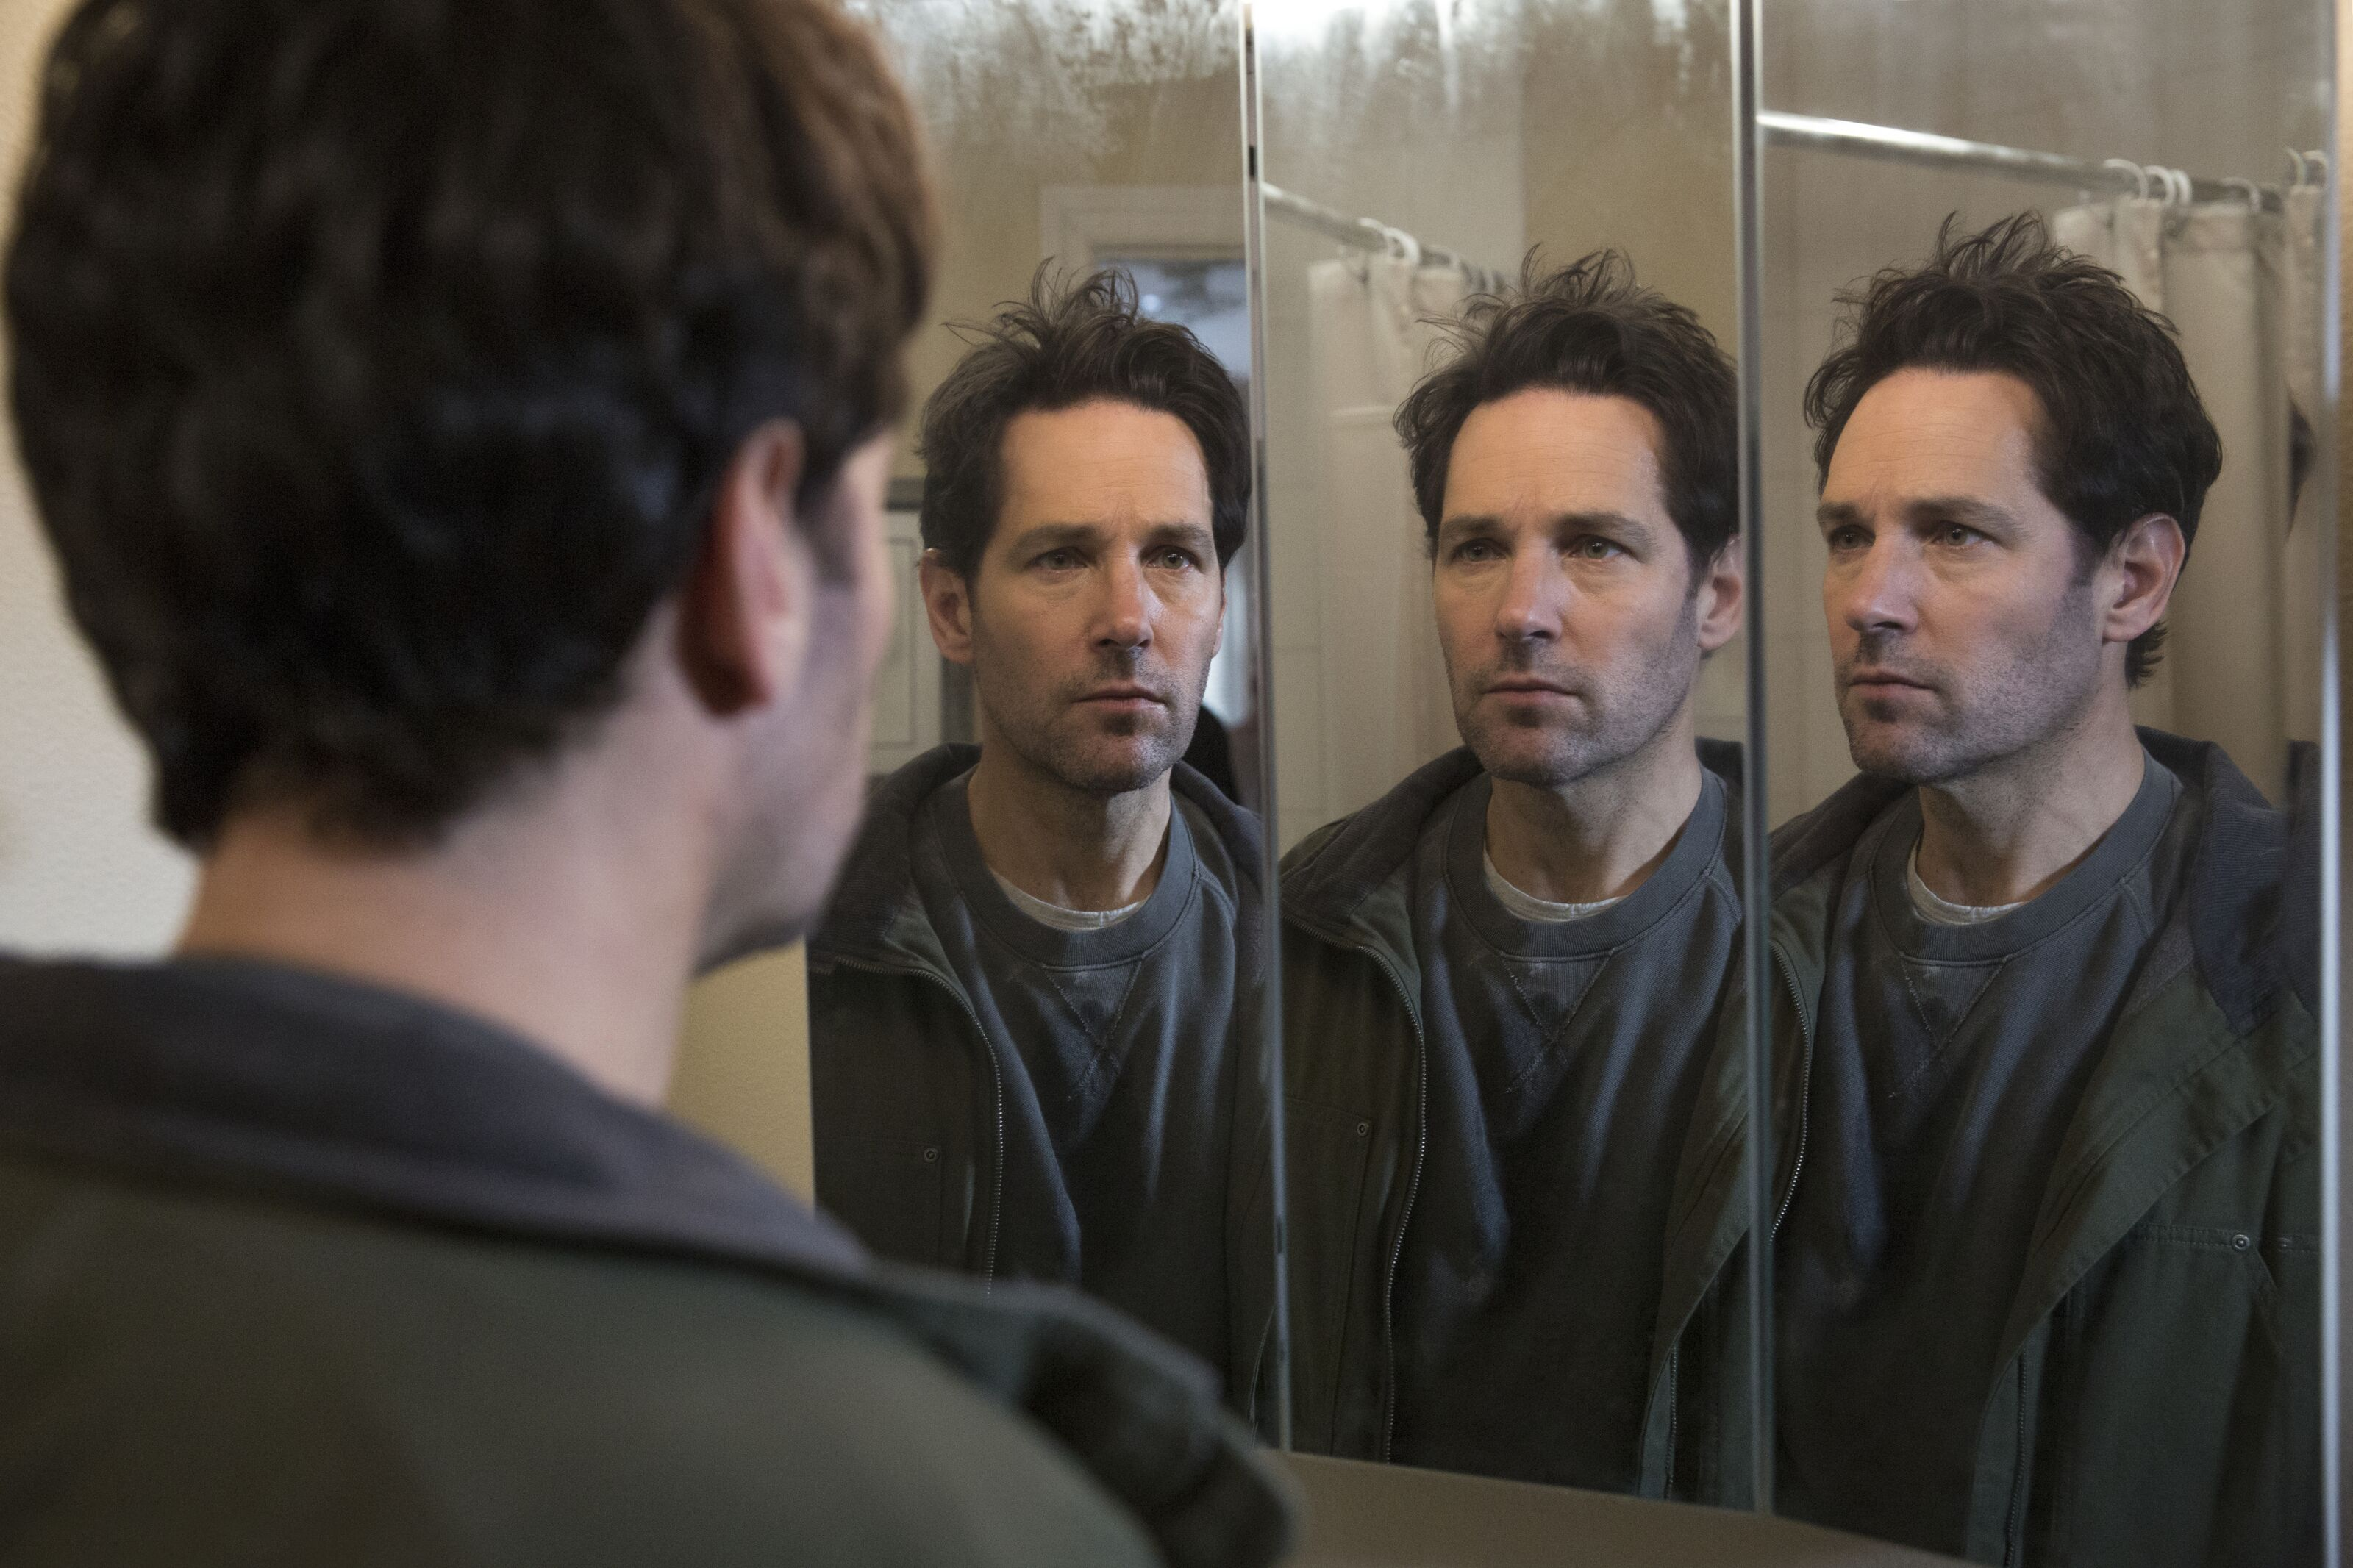 5 good Netflix shows to watch this weekend: Living with Yourself and more